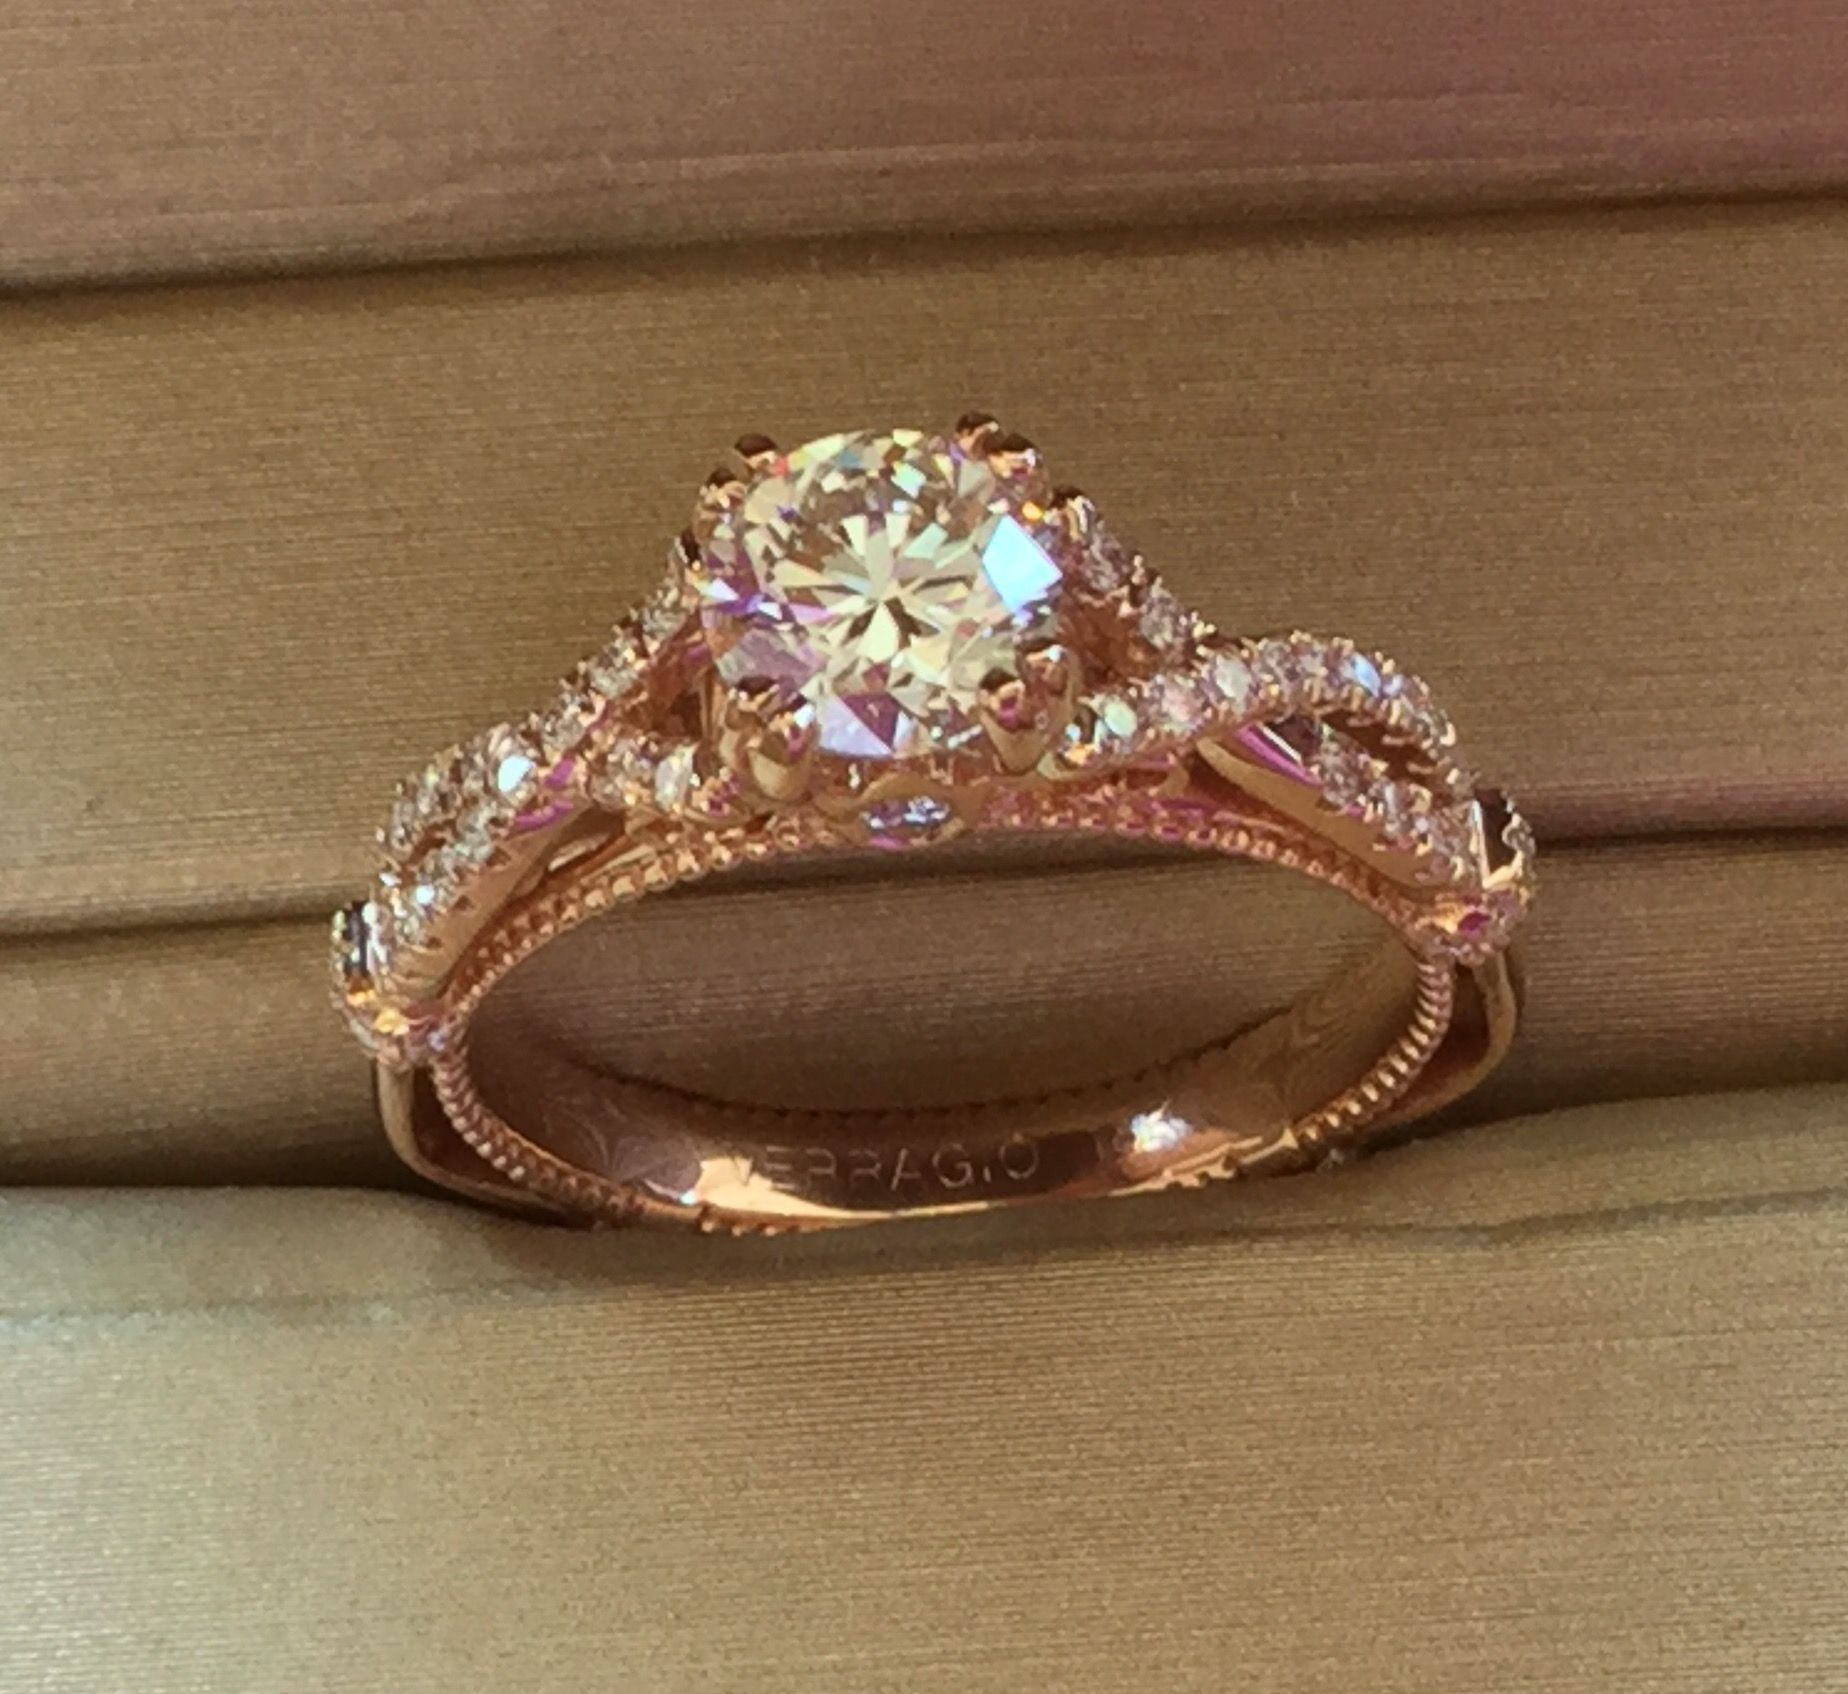 Verragio Parisian Collection 18k Rose Gold Twist Band Engagement